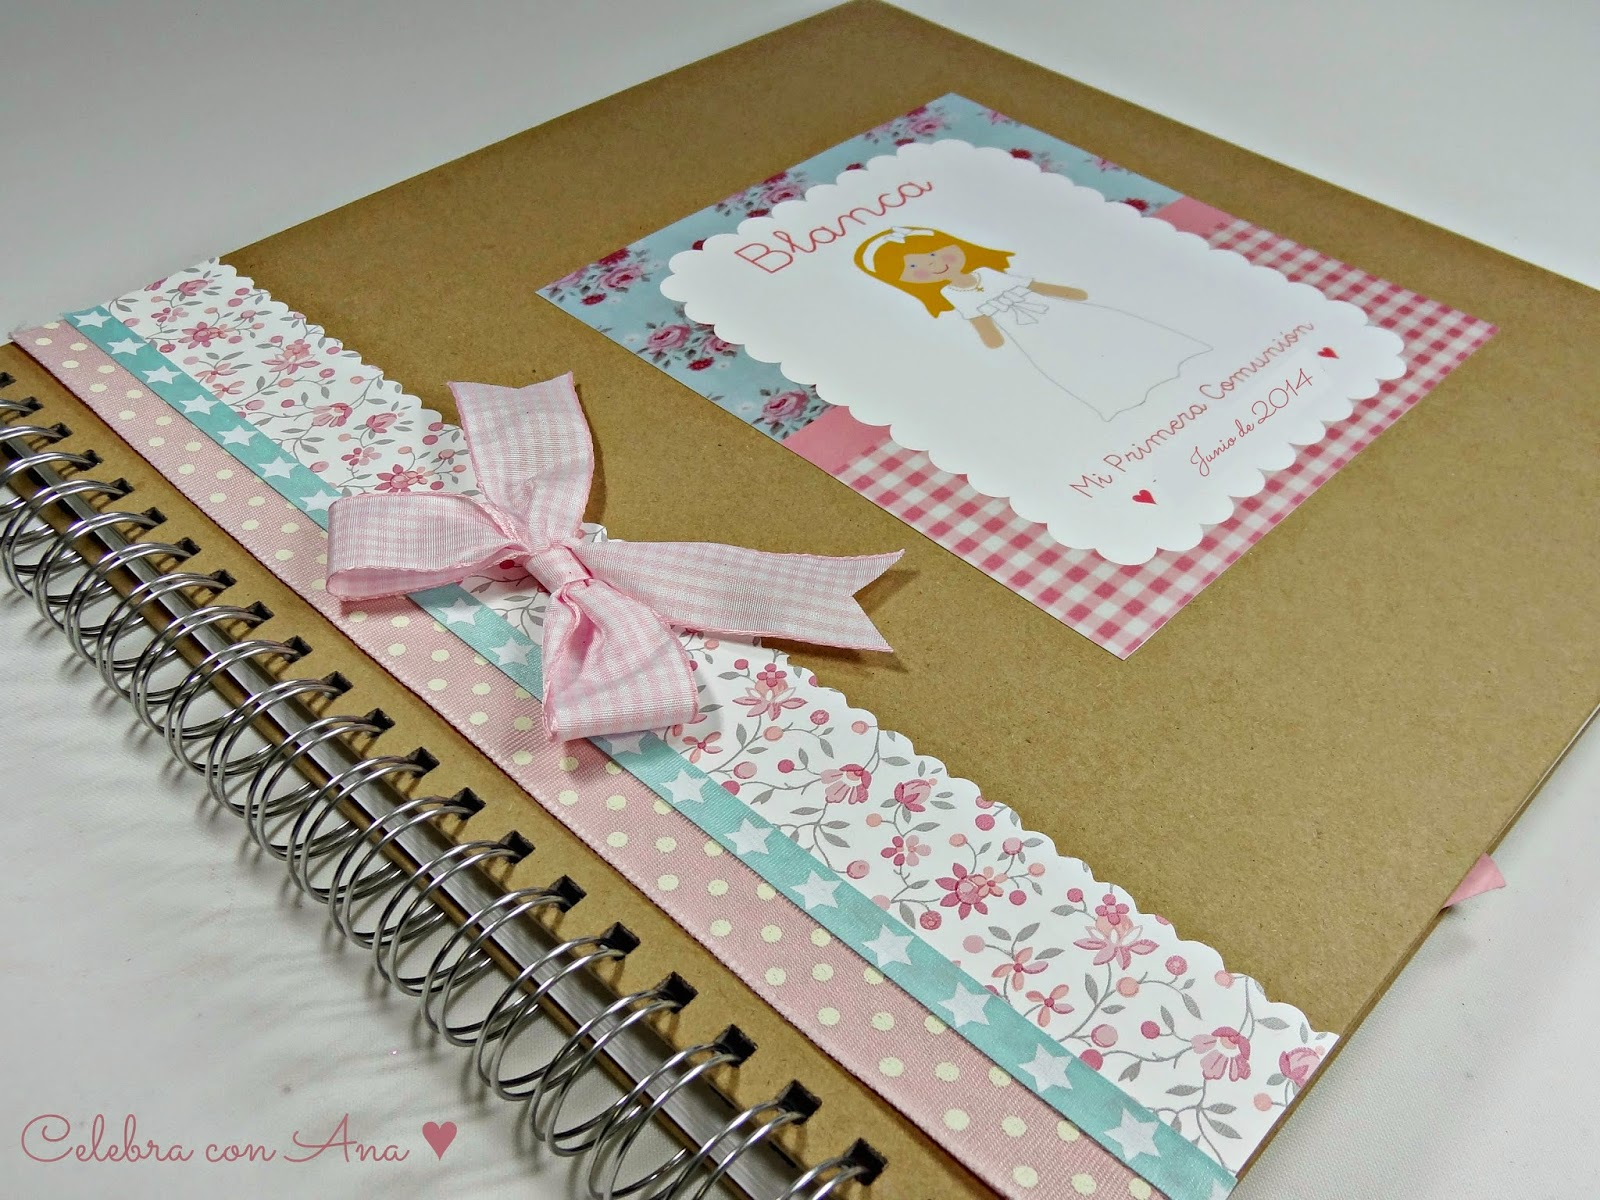 Decorar Album Scrap Celebra Con Ana Compartiendo Experiencias Creativas